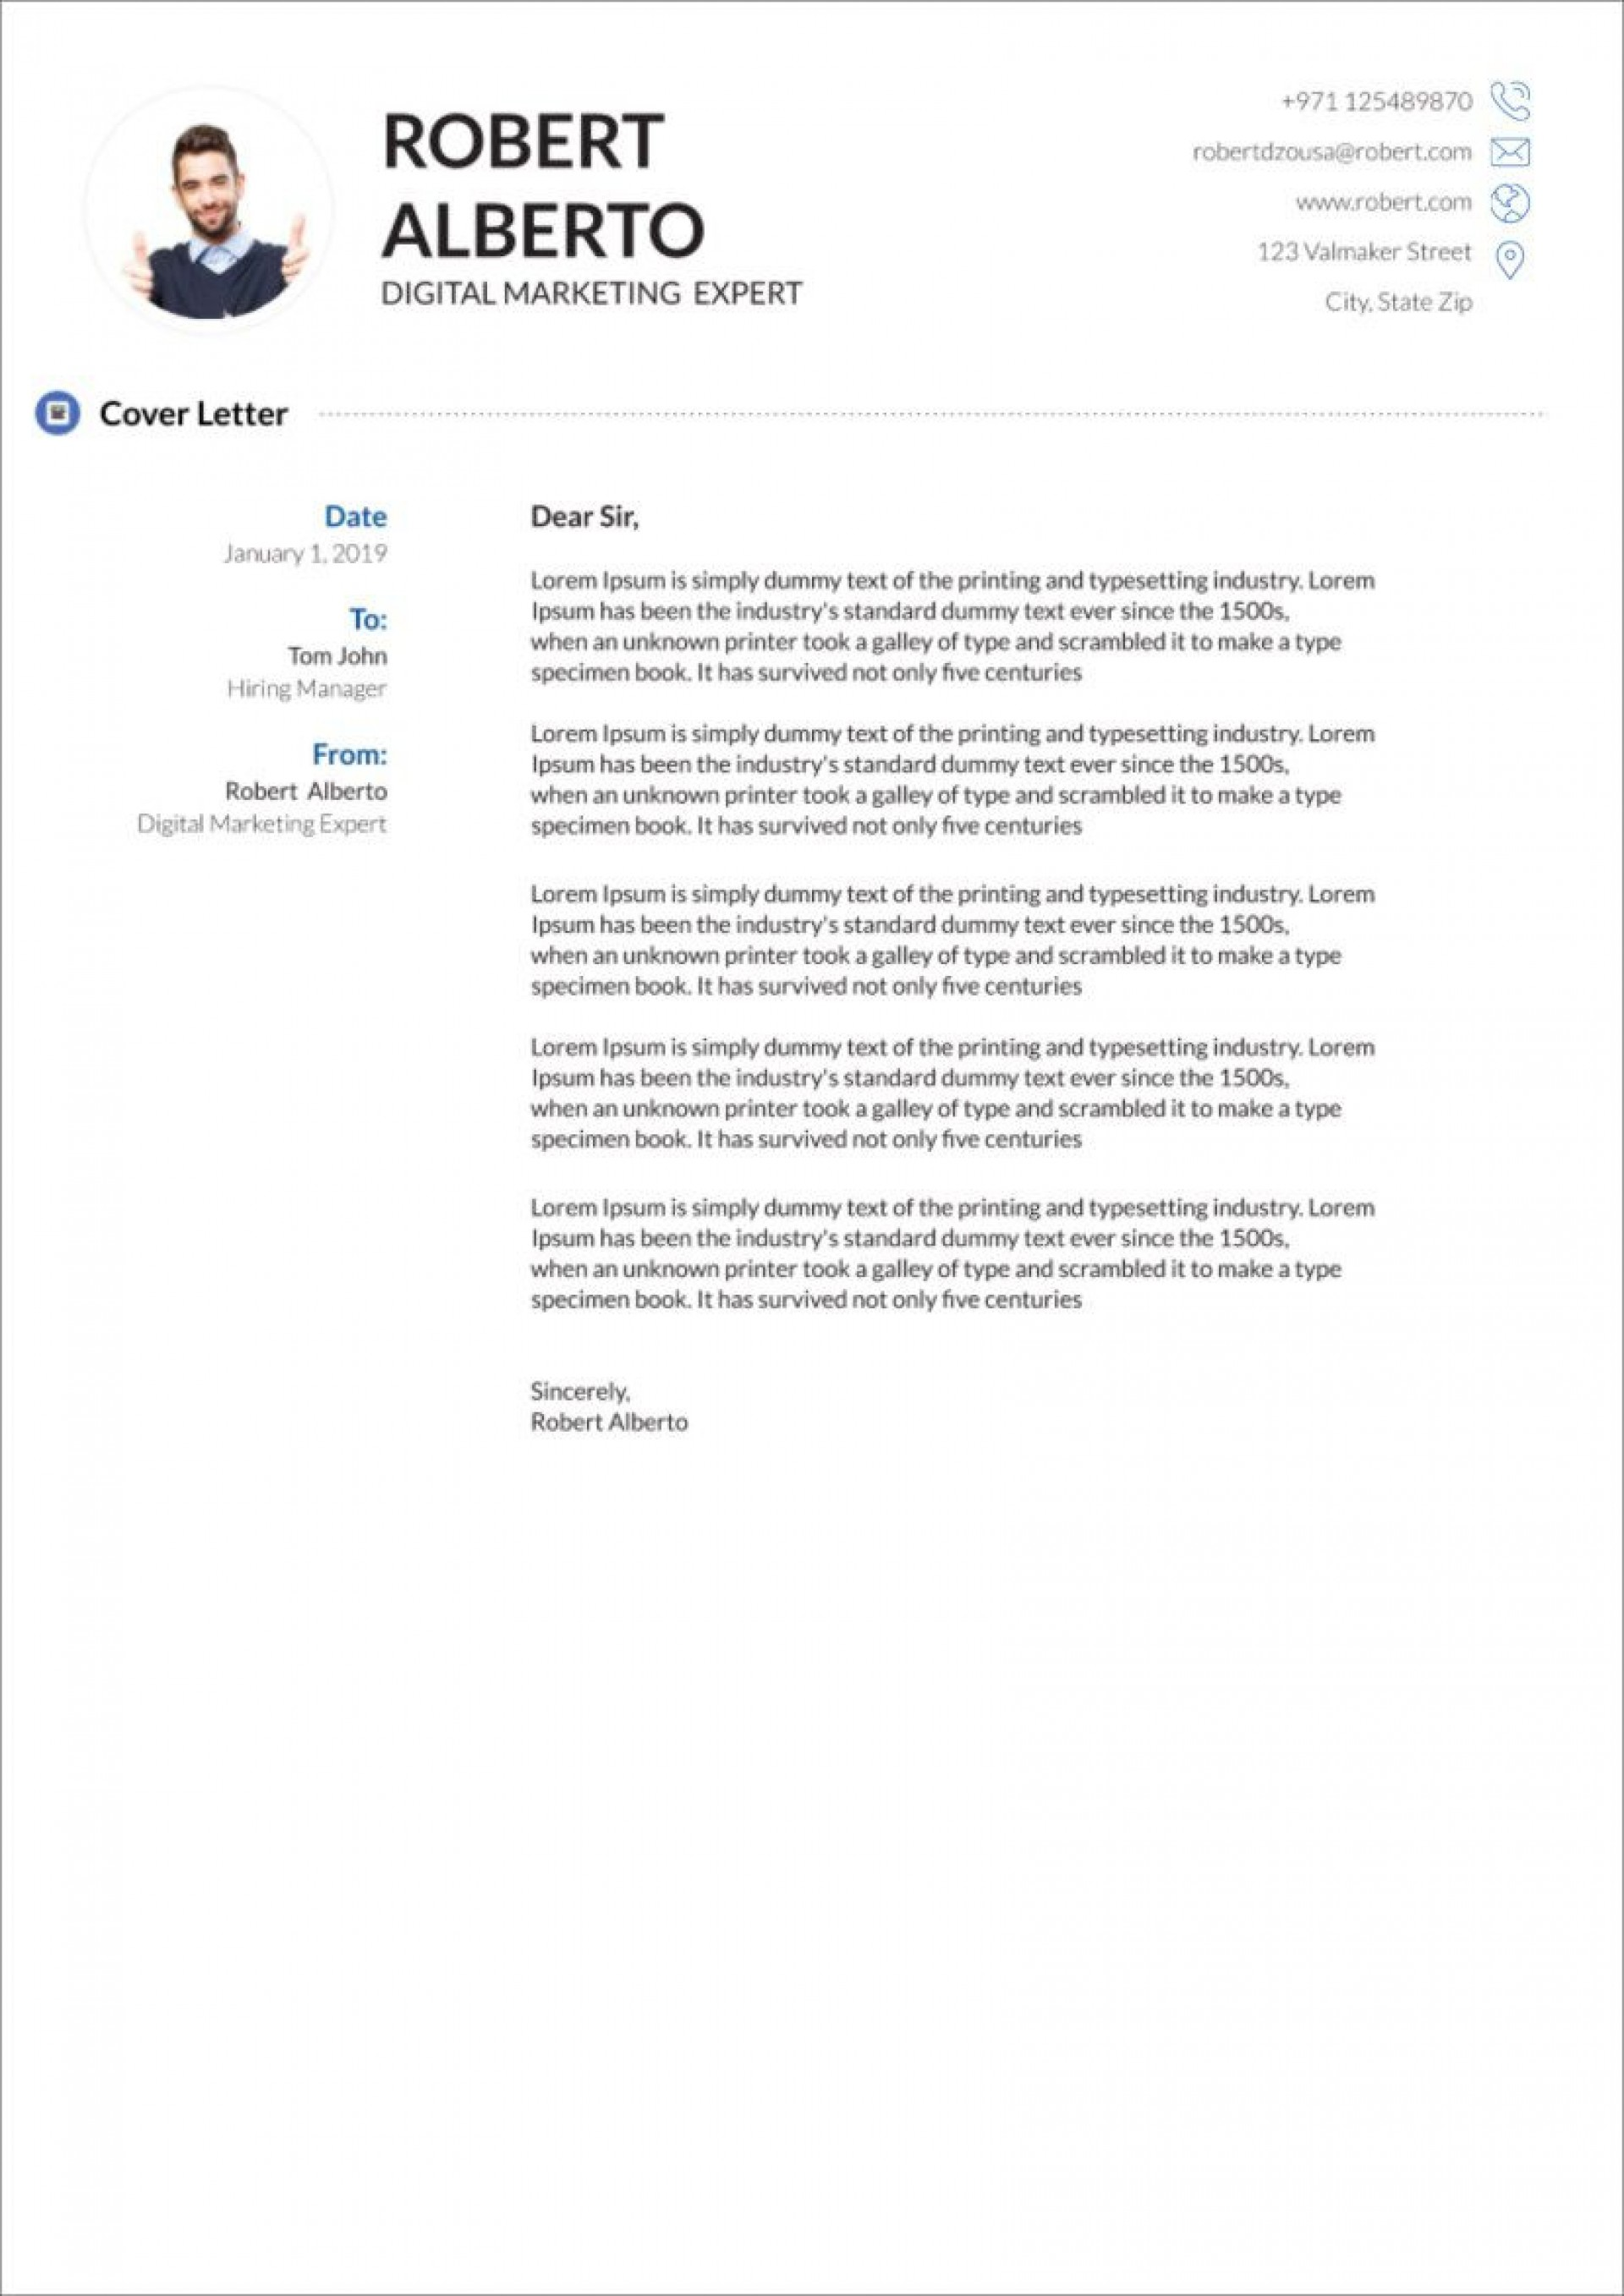 002 Exceptional Download Cover Letter Template Free High Resolution  Mac Creative Microsoft Word Document1920